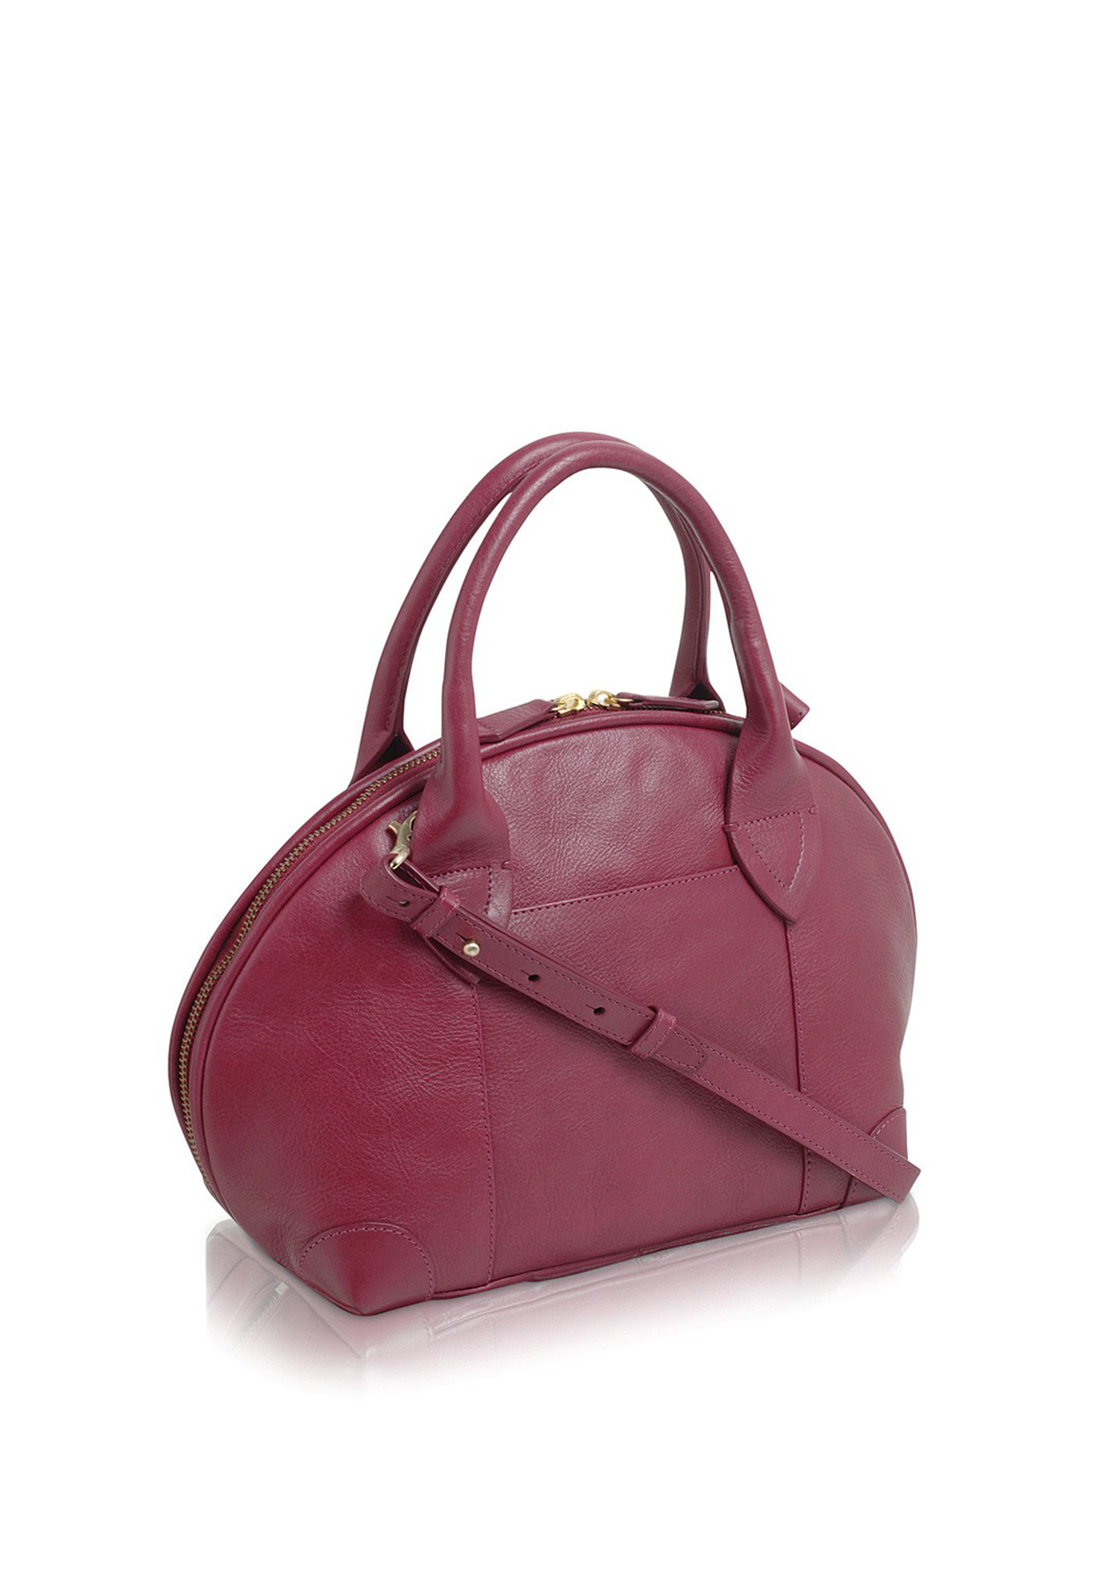 Radley Domed Bag Red Small